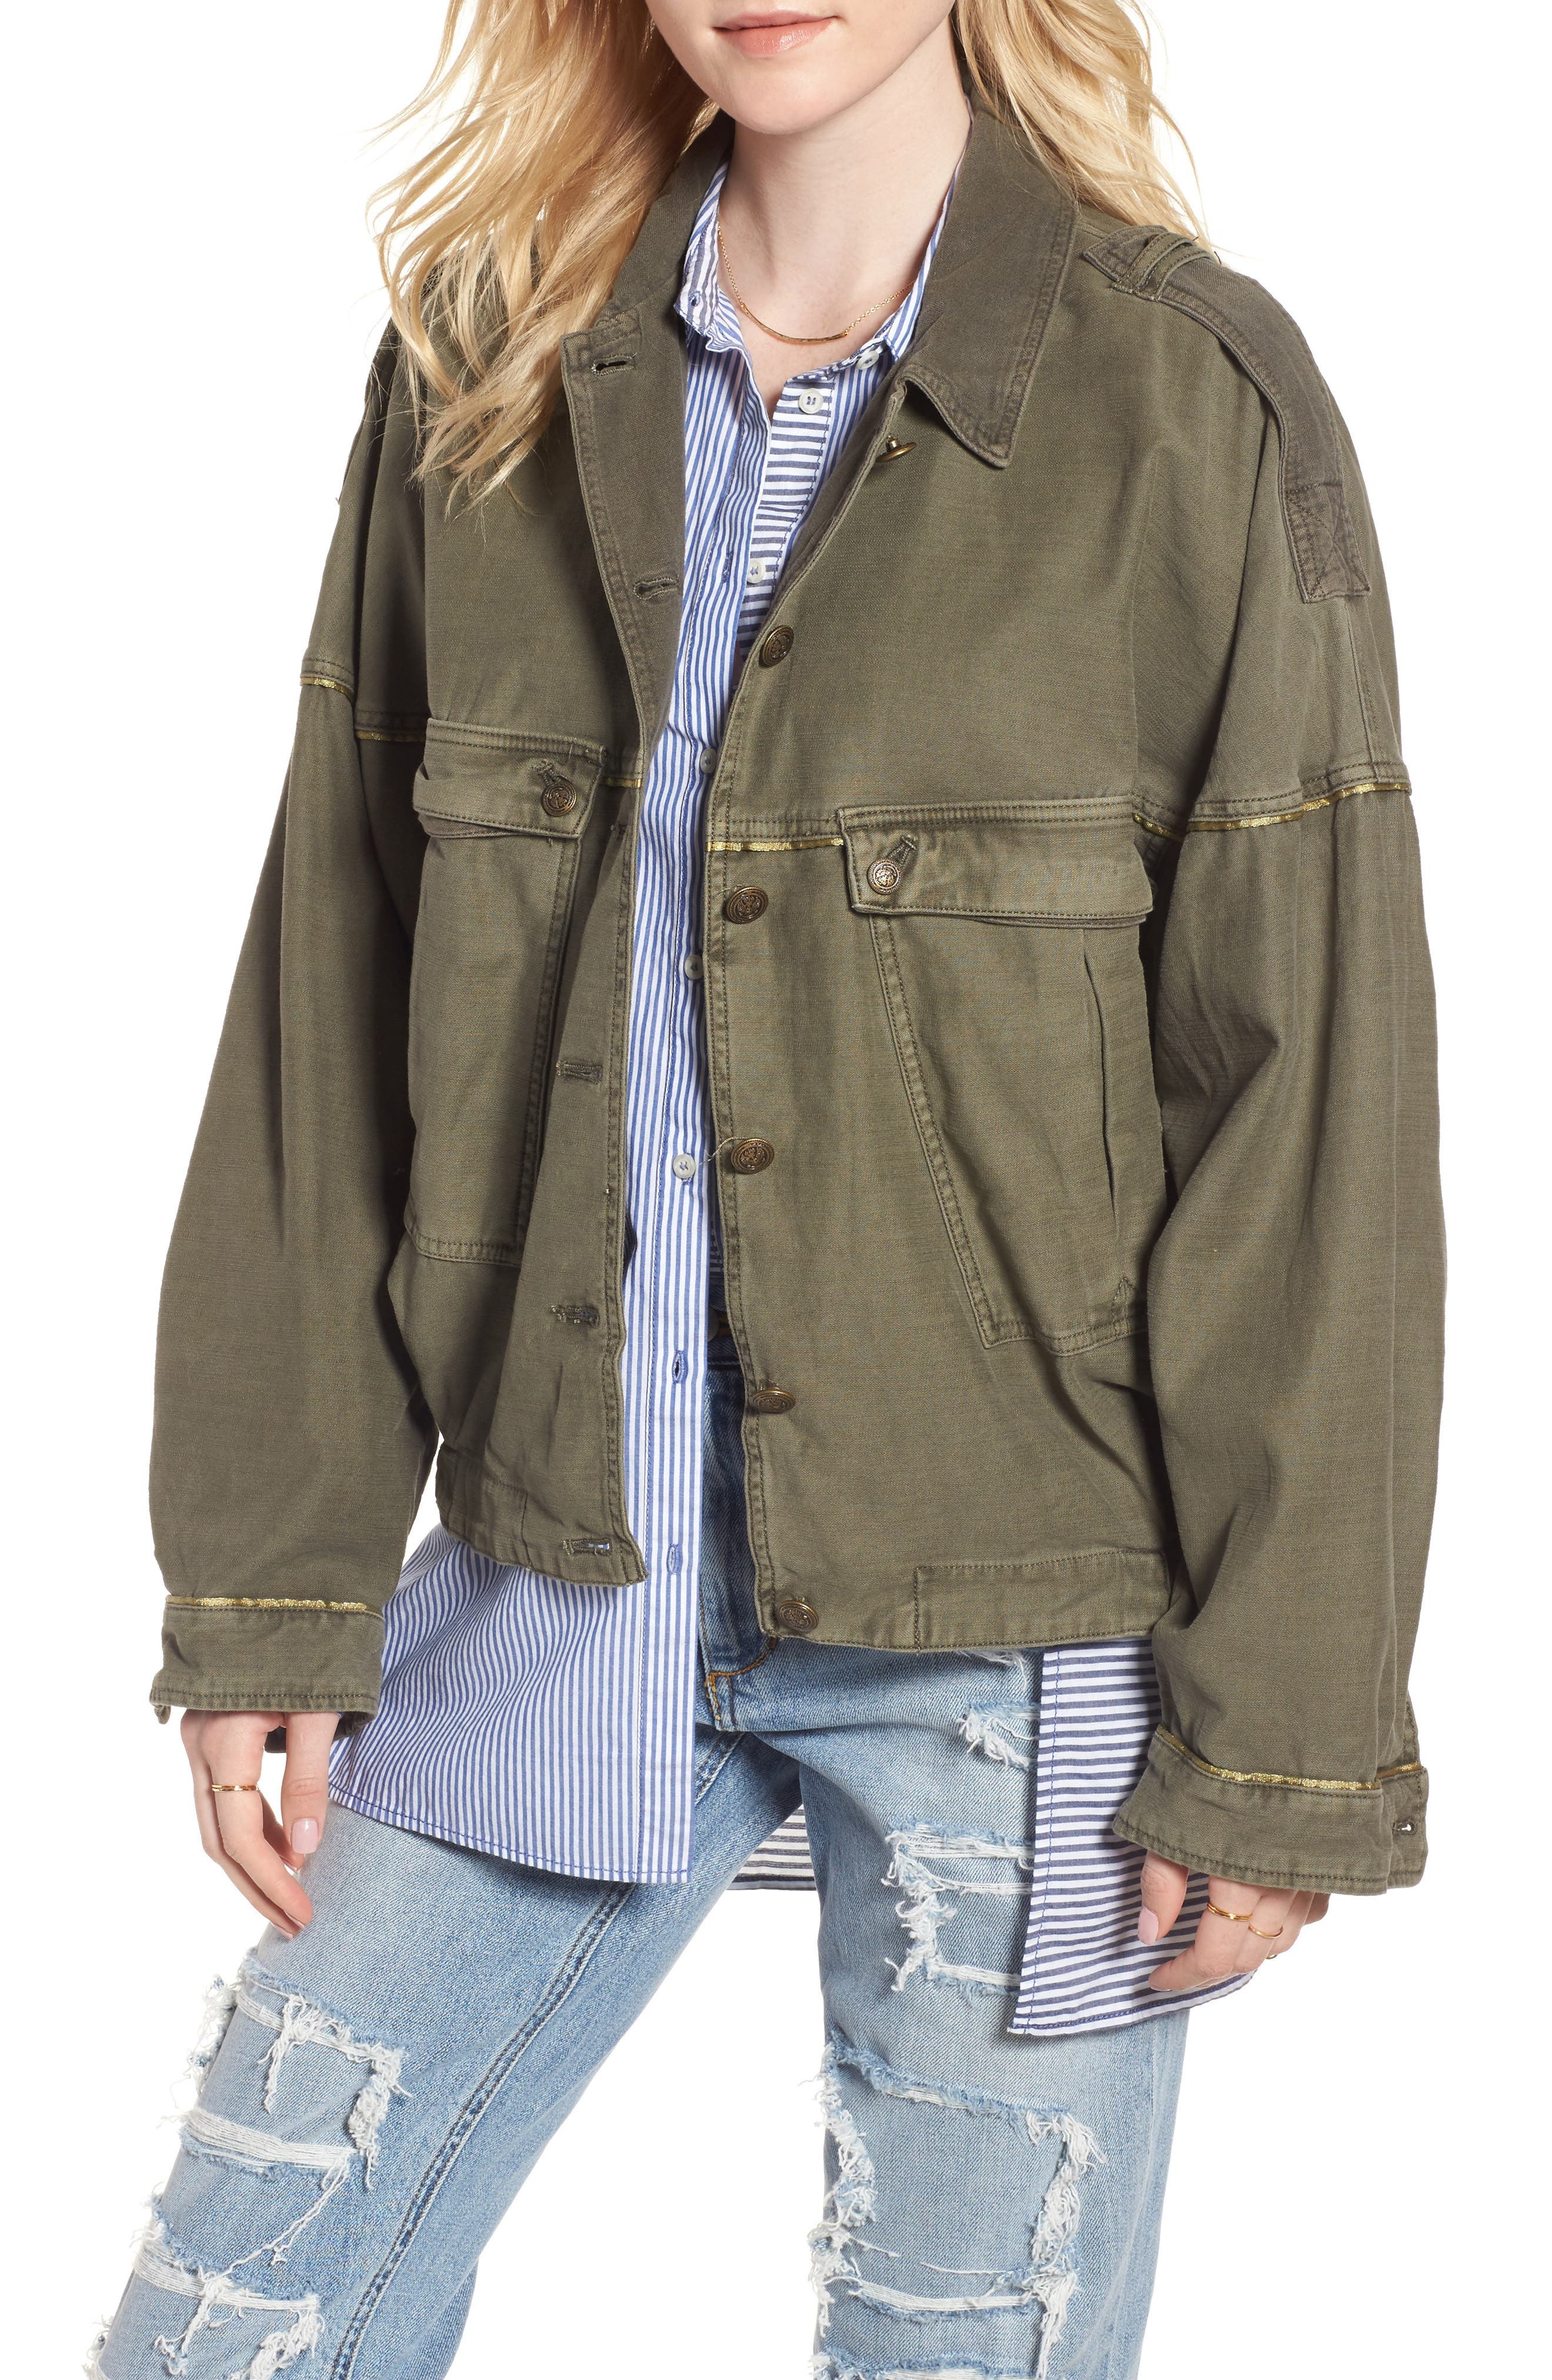 Alternate Image 1 Selected - Free People Slouchy Military Jacket